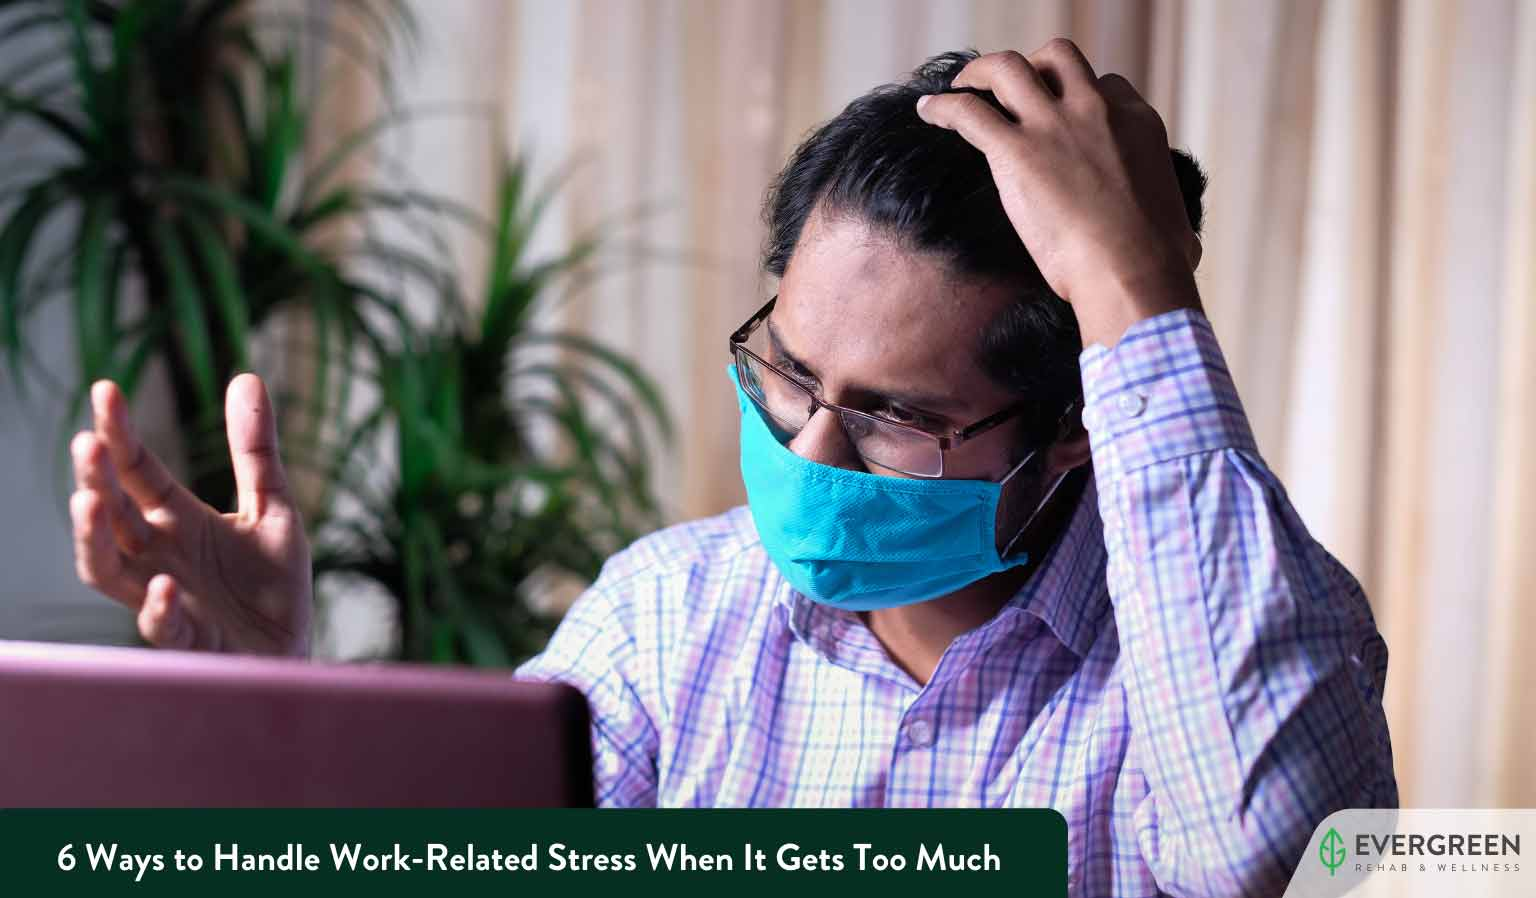 6 Ways to Handle Work-Related Stress When It Gets Too Much